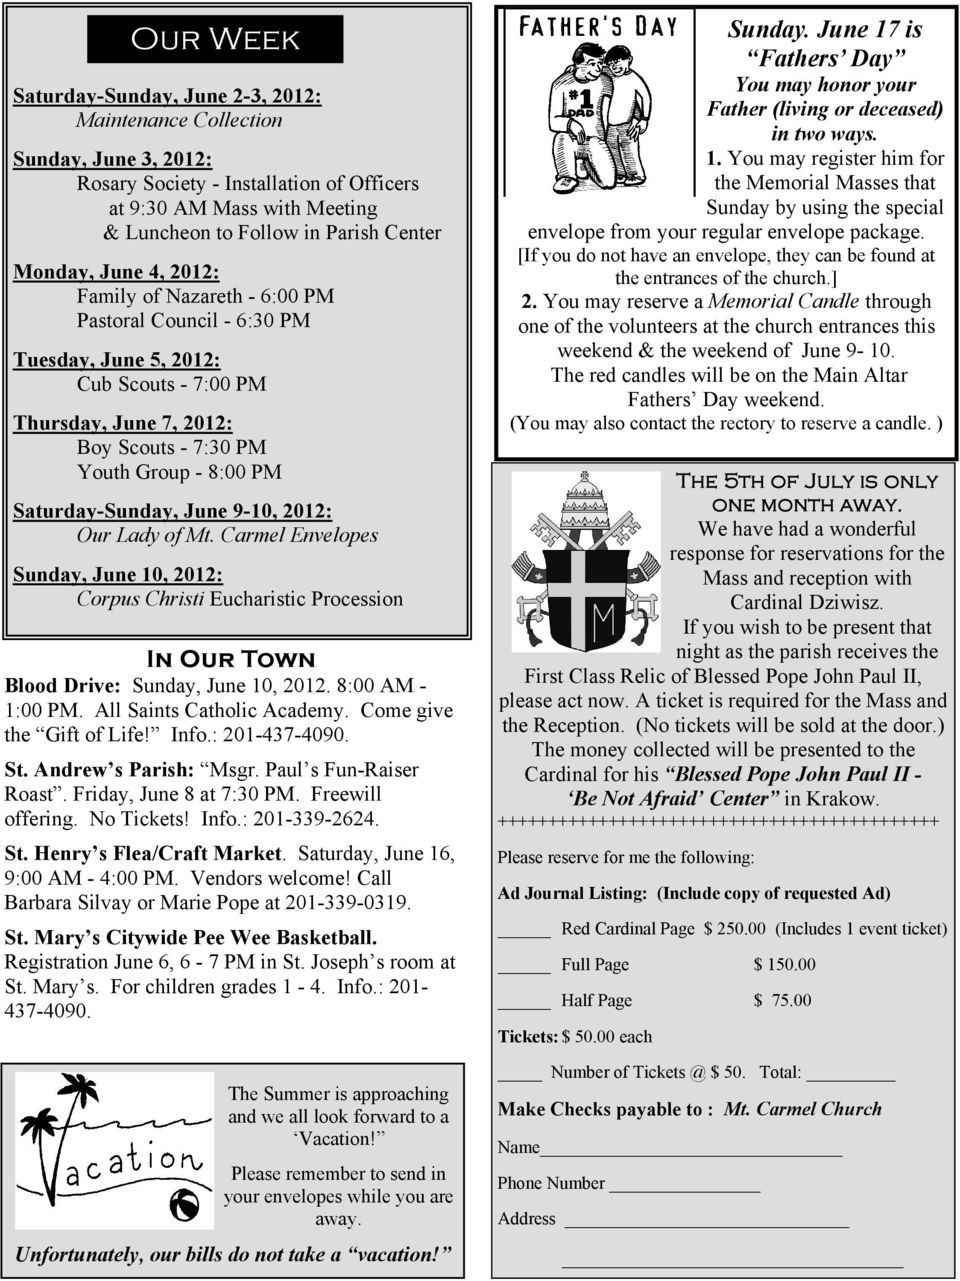 Saturday-Sunday, June 9-10, 2012: Our Lady of Mt. Carmel Envelopes Sunday, June 10, 2012: Corpus Christi Eucharistic Procession In Our Town Blood Drive: Sunday, June 10, 2012. 8:00 AM - 1:00 PM.